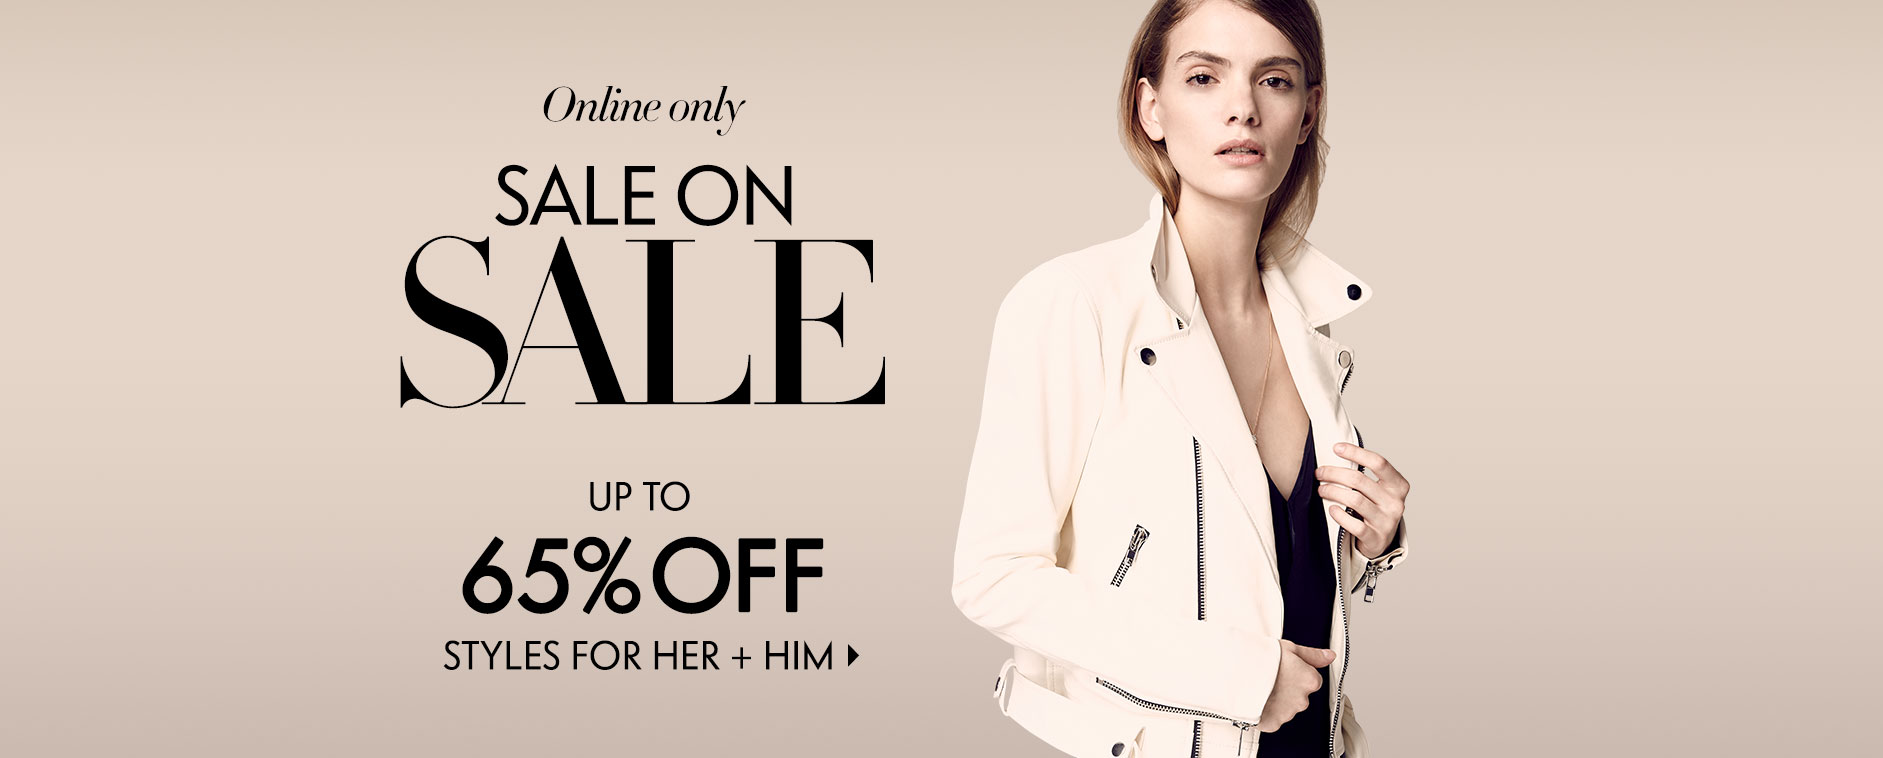 Online only: Sale on Sale - Up to 65% off styles for her + him